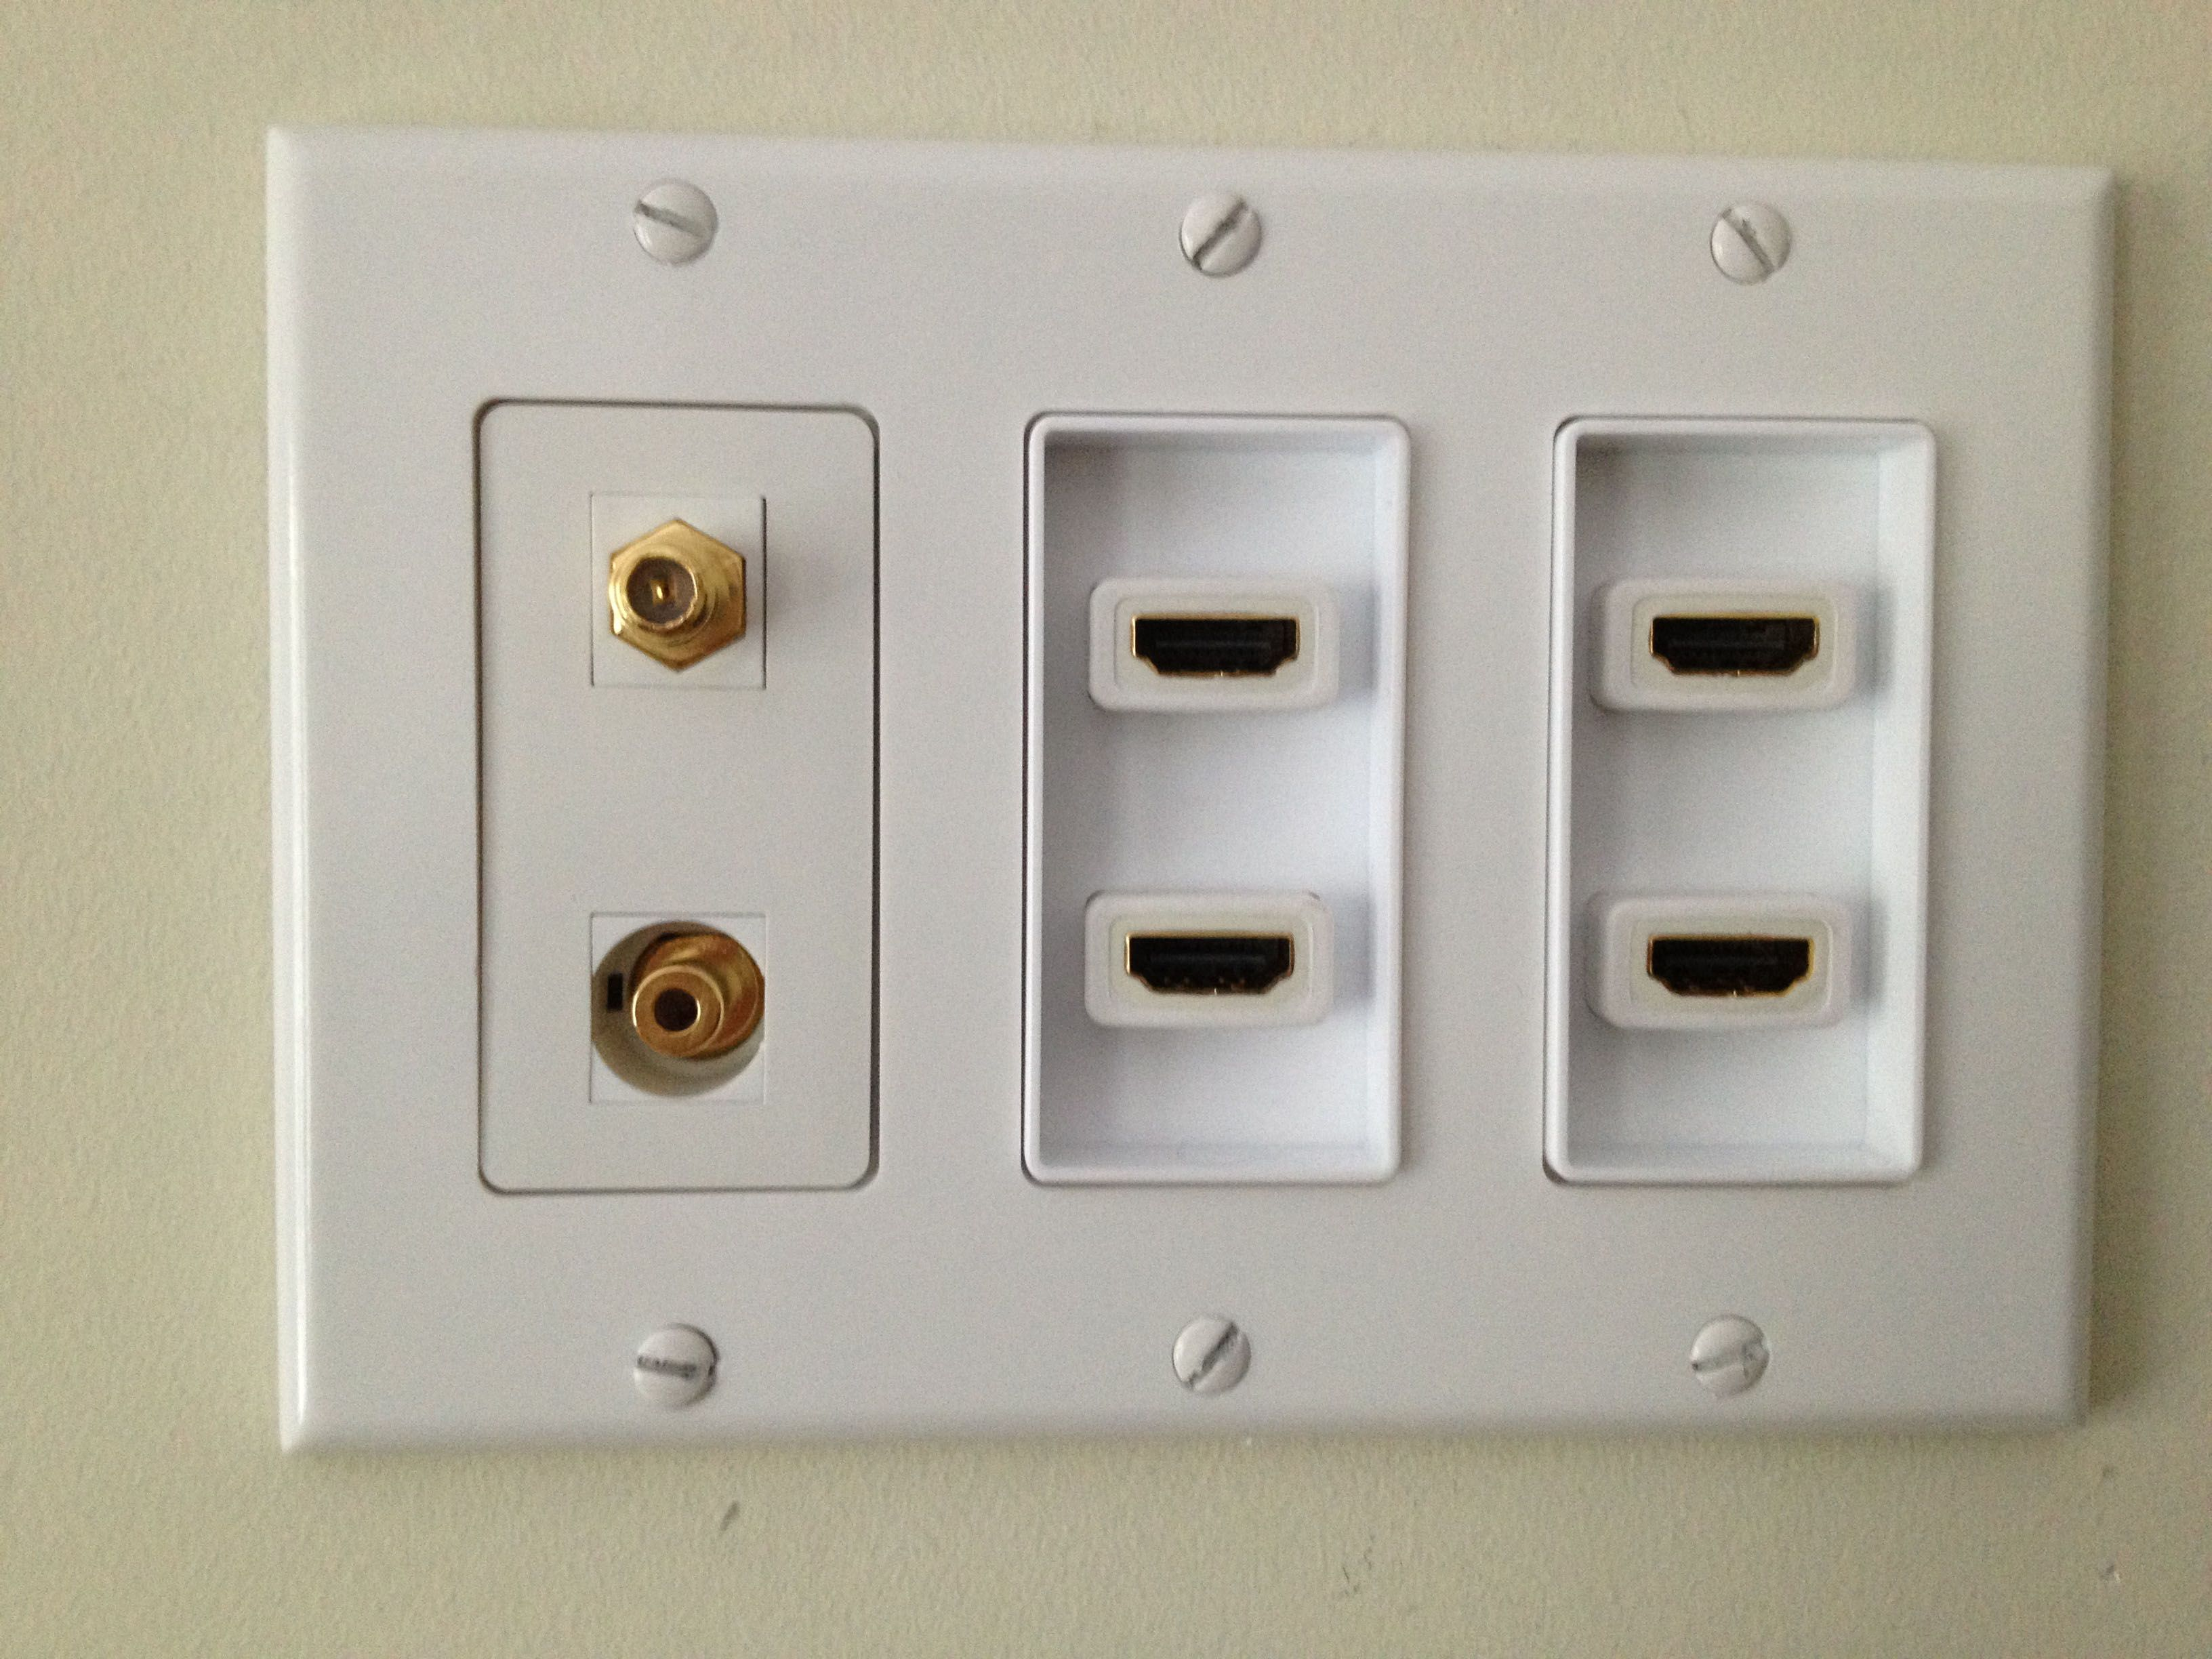 Banana Plug Wall Plate Impressive 51Ch Sound Distribution Banana Plug Wall Plate 2 Port Hdmi Wall Decorating Design